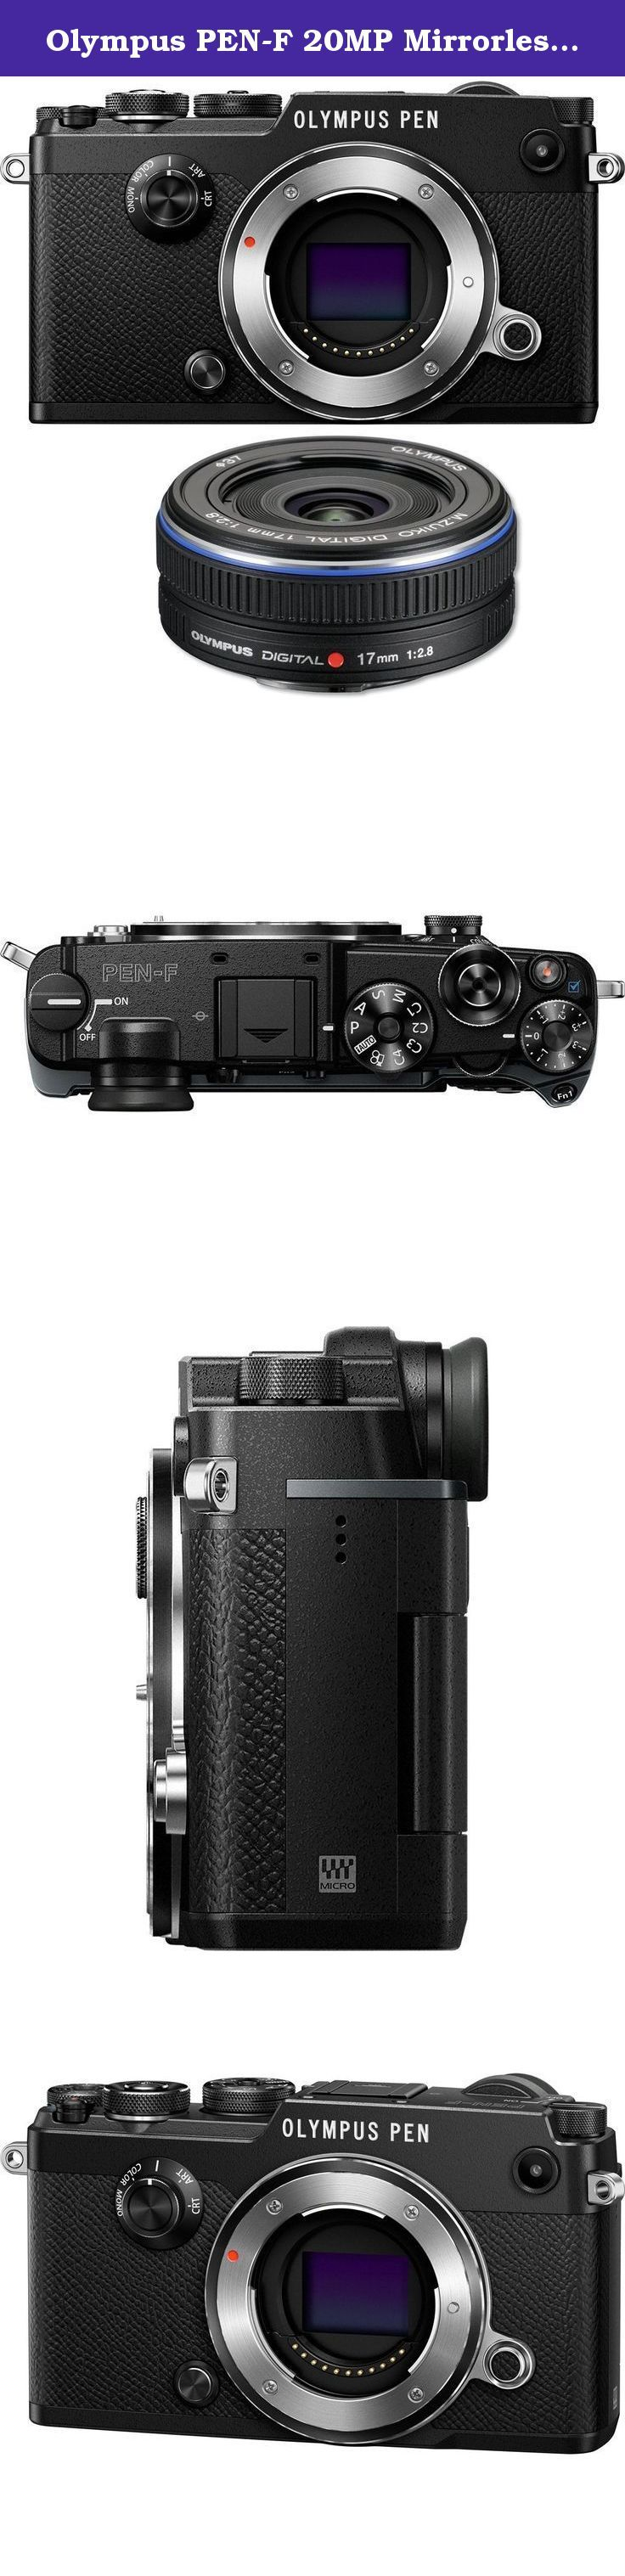 Olympus PEN-F 20MP Mirrorless Micro Four Thirds Digital Camera w/ 17mm f2.8 Lens Bundle includes PEN-F Digital Camera and M.Zuiko 17mm f2.8 Micro Four Thirds Wide-angle Pancake Lens. Bundle Includes Olympus PEN-F Mirrorless Digital Camera Body (Black) Olympus M.Zuiko 17mm f2.8 Micro Four Thirds Wide-angle Pancake Lens (Black) Rangefinder style cameras were all the rage in 1963.Now they're back. The beautifully-crafted PEN-F is ideal for street shooters, as a second camera for studio pros...